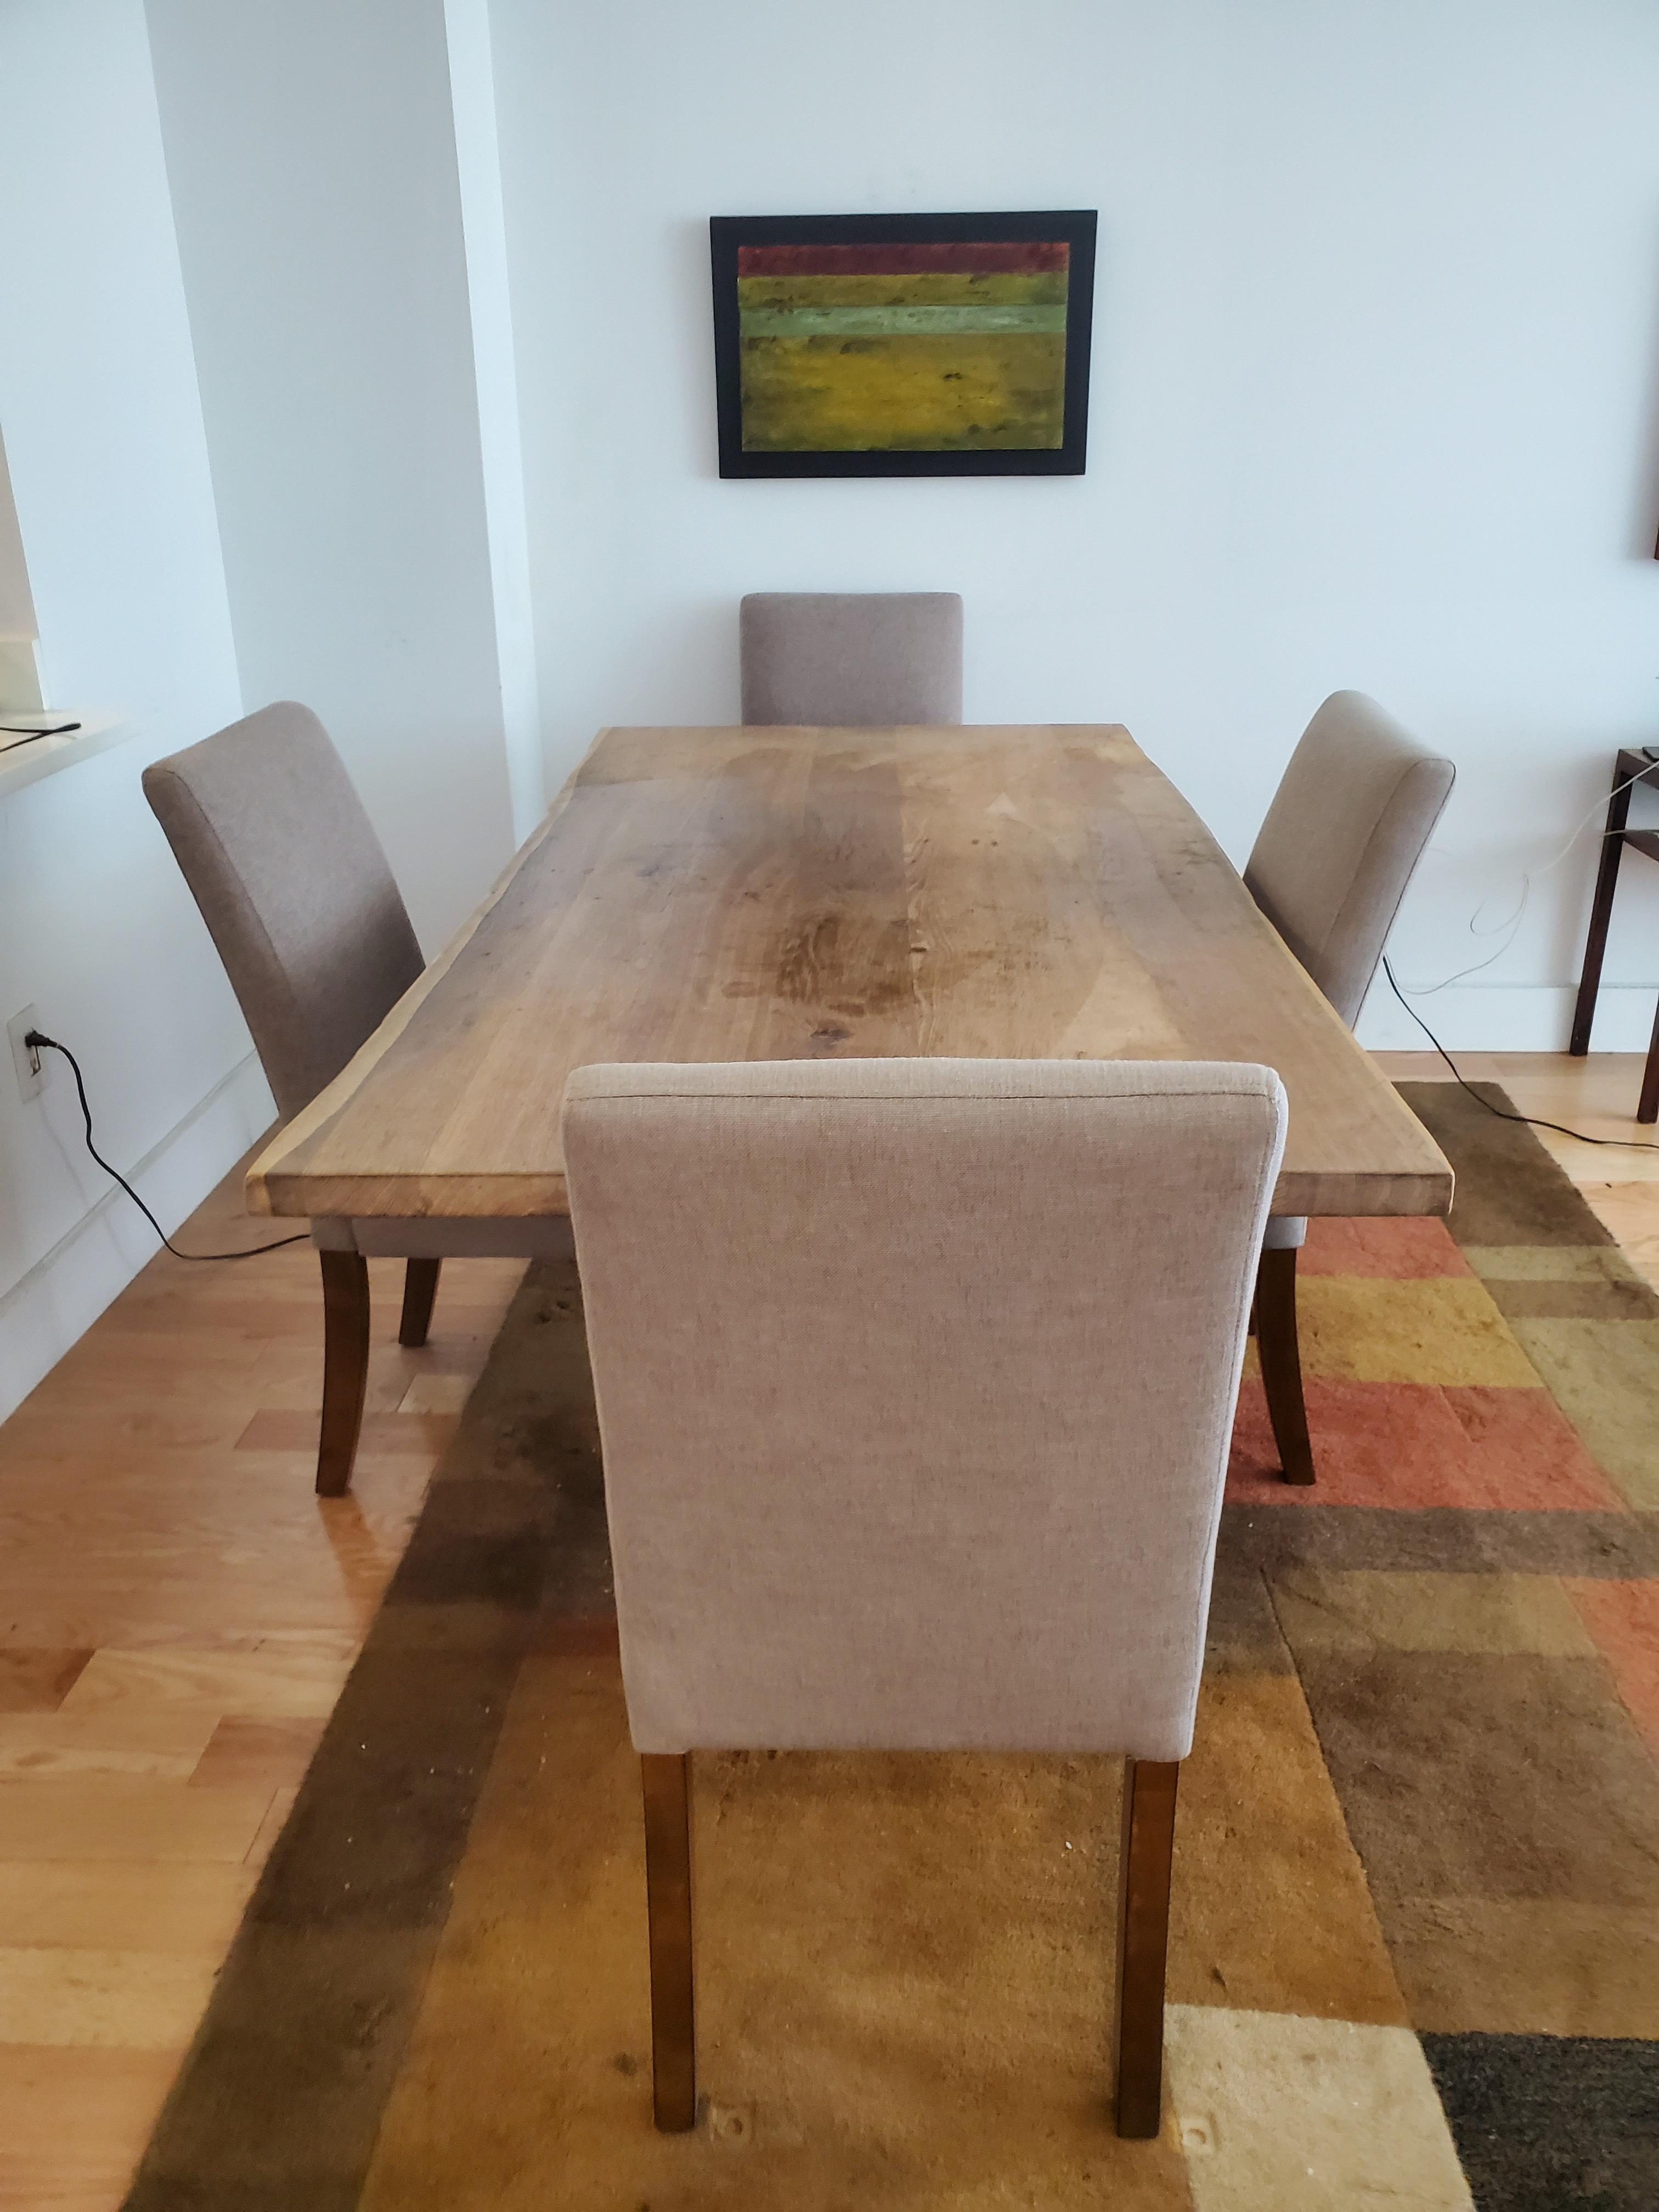 Crate and Barrel wood table and chairs